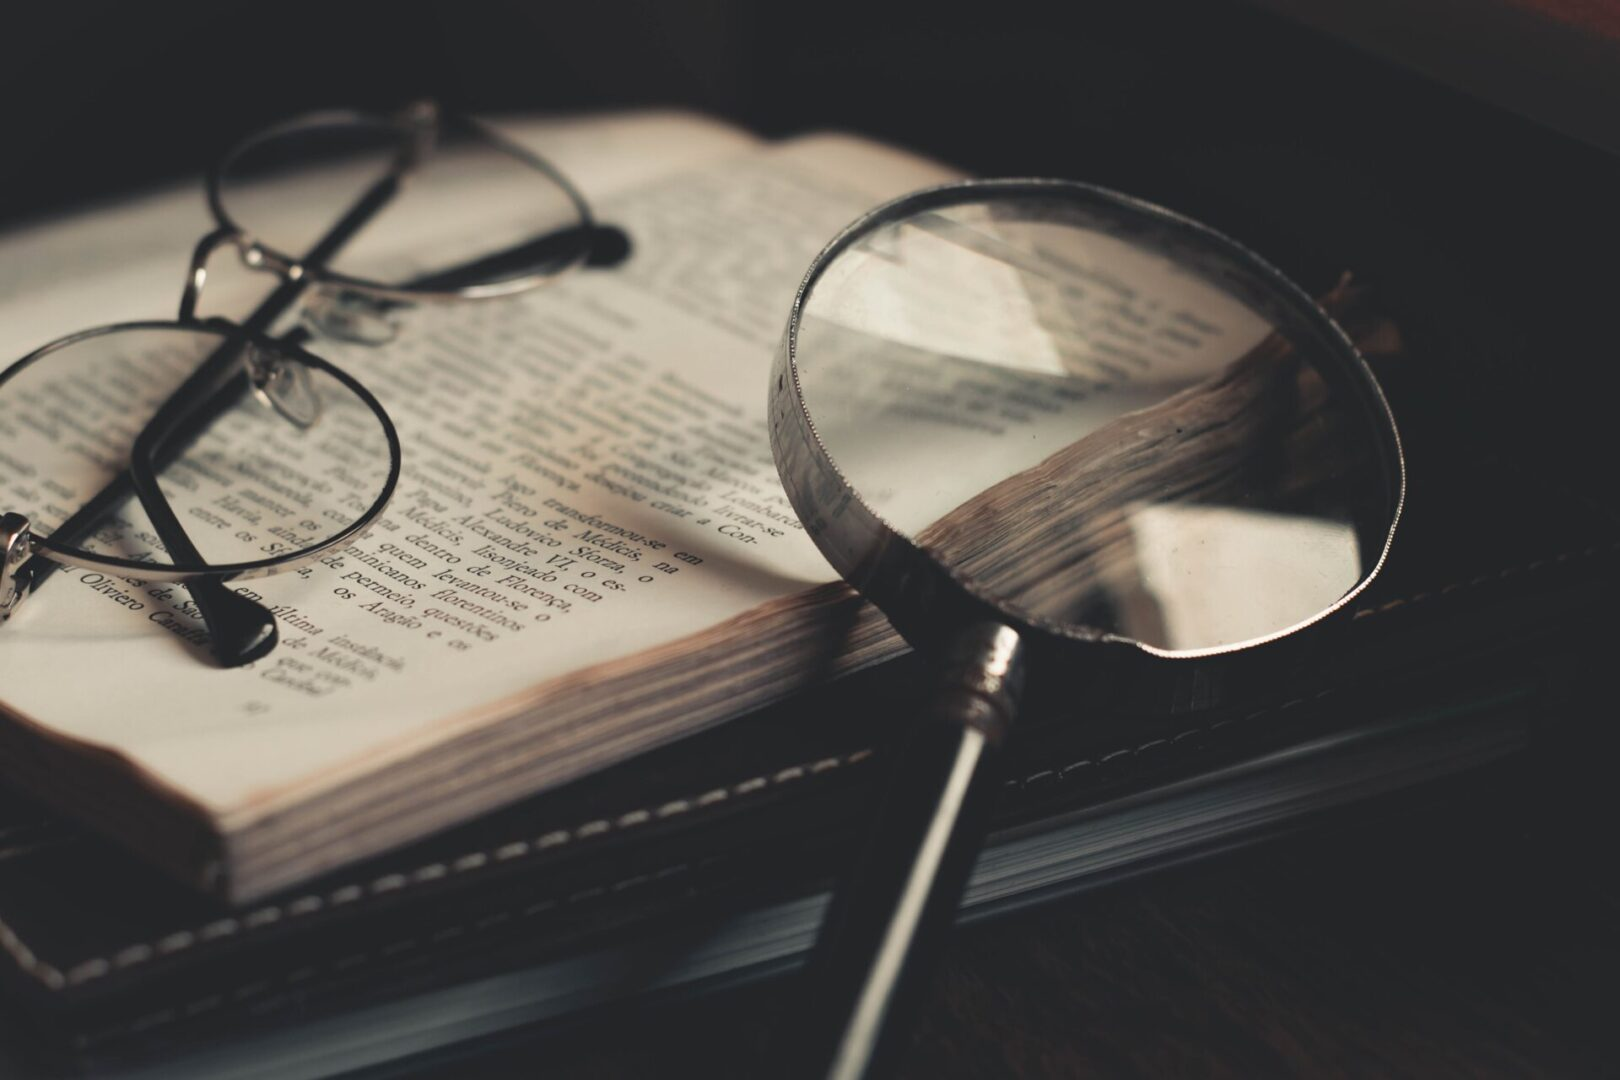 gray-magnifying-glass-and-eyeglasses-on-top-of-open-book-3109168 (1)